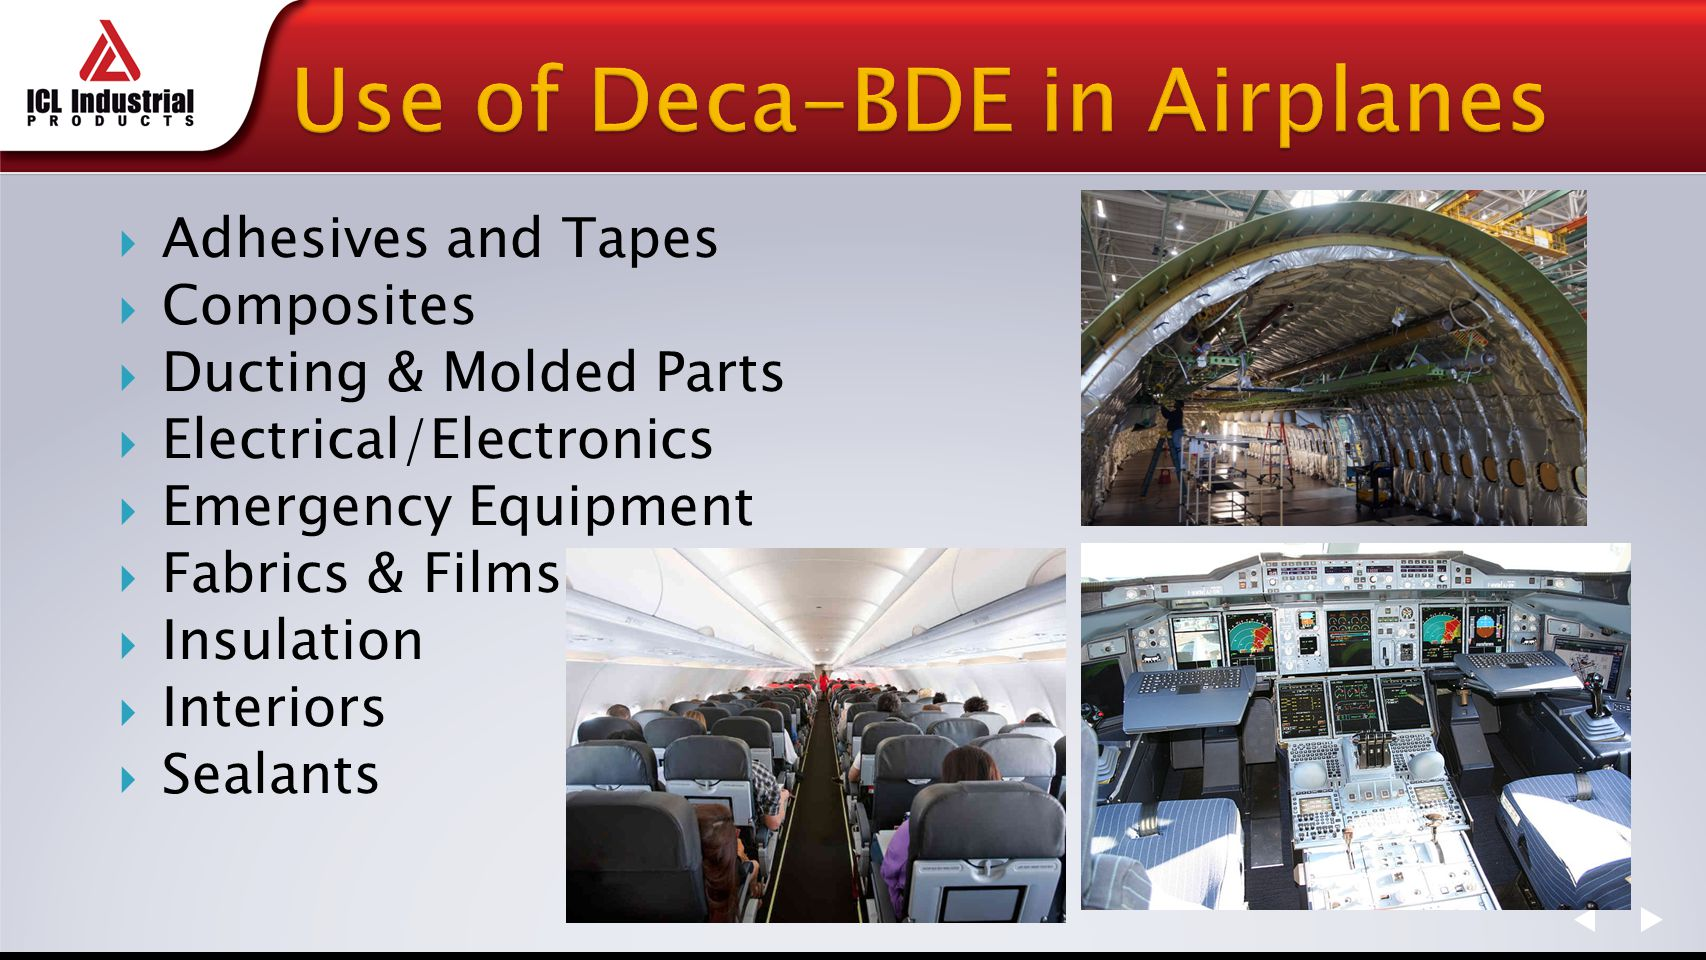  Adhesives and Tapes  Composites  Ducting & Molded Parts  Electrical/Electronics  Emergency Equipment  Fabrics & Films  Insulation  Interiors  Sealants